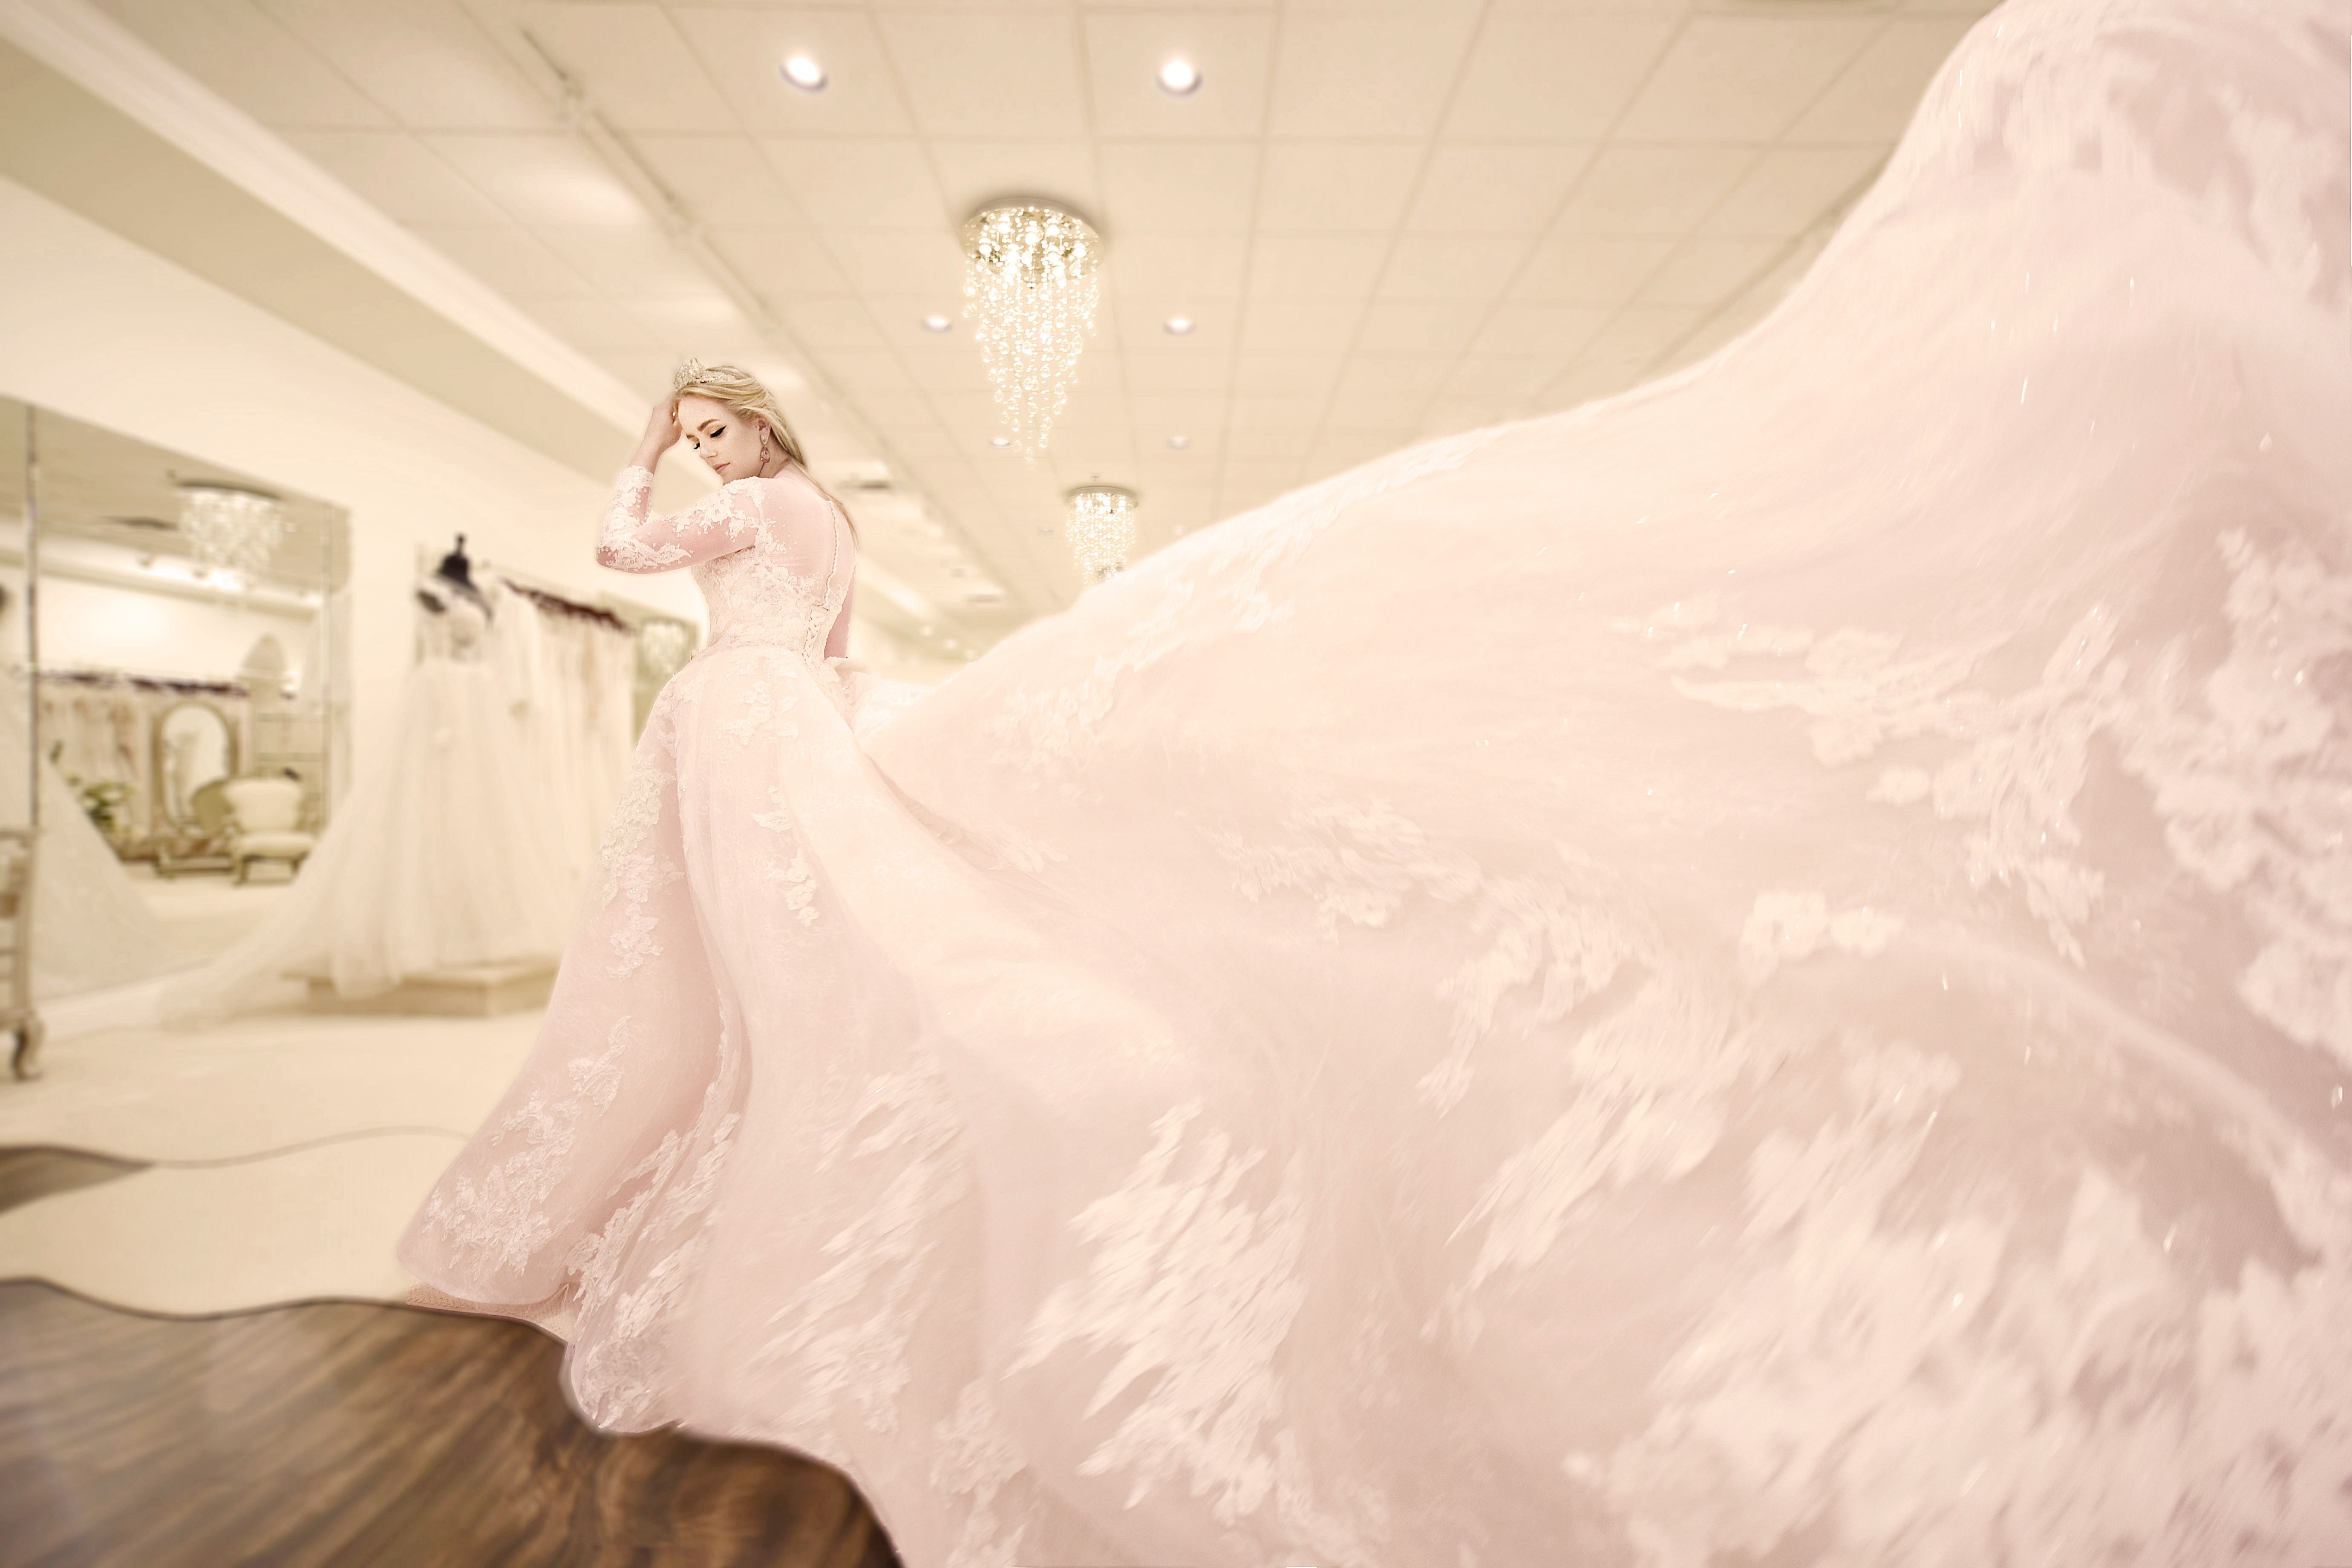 eab89208928f8 Bridal and Special Occasion Gowns | Crème Couture Bridal | Guelph